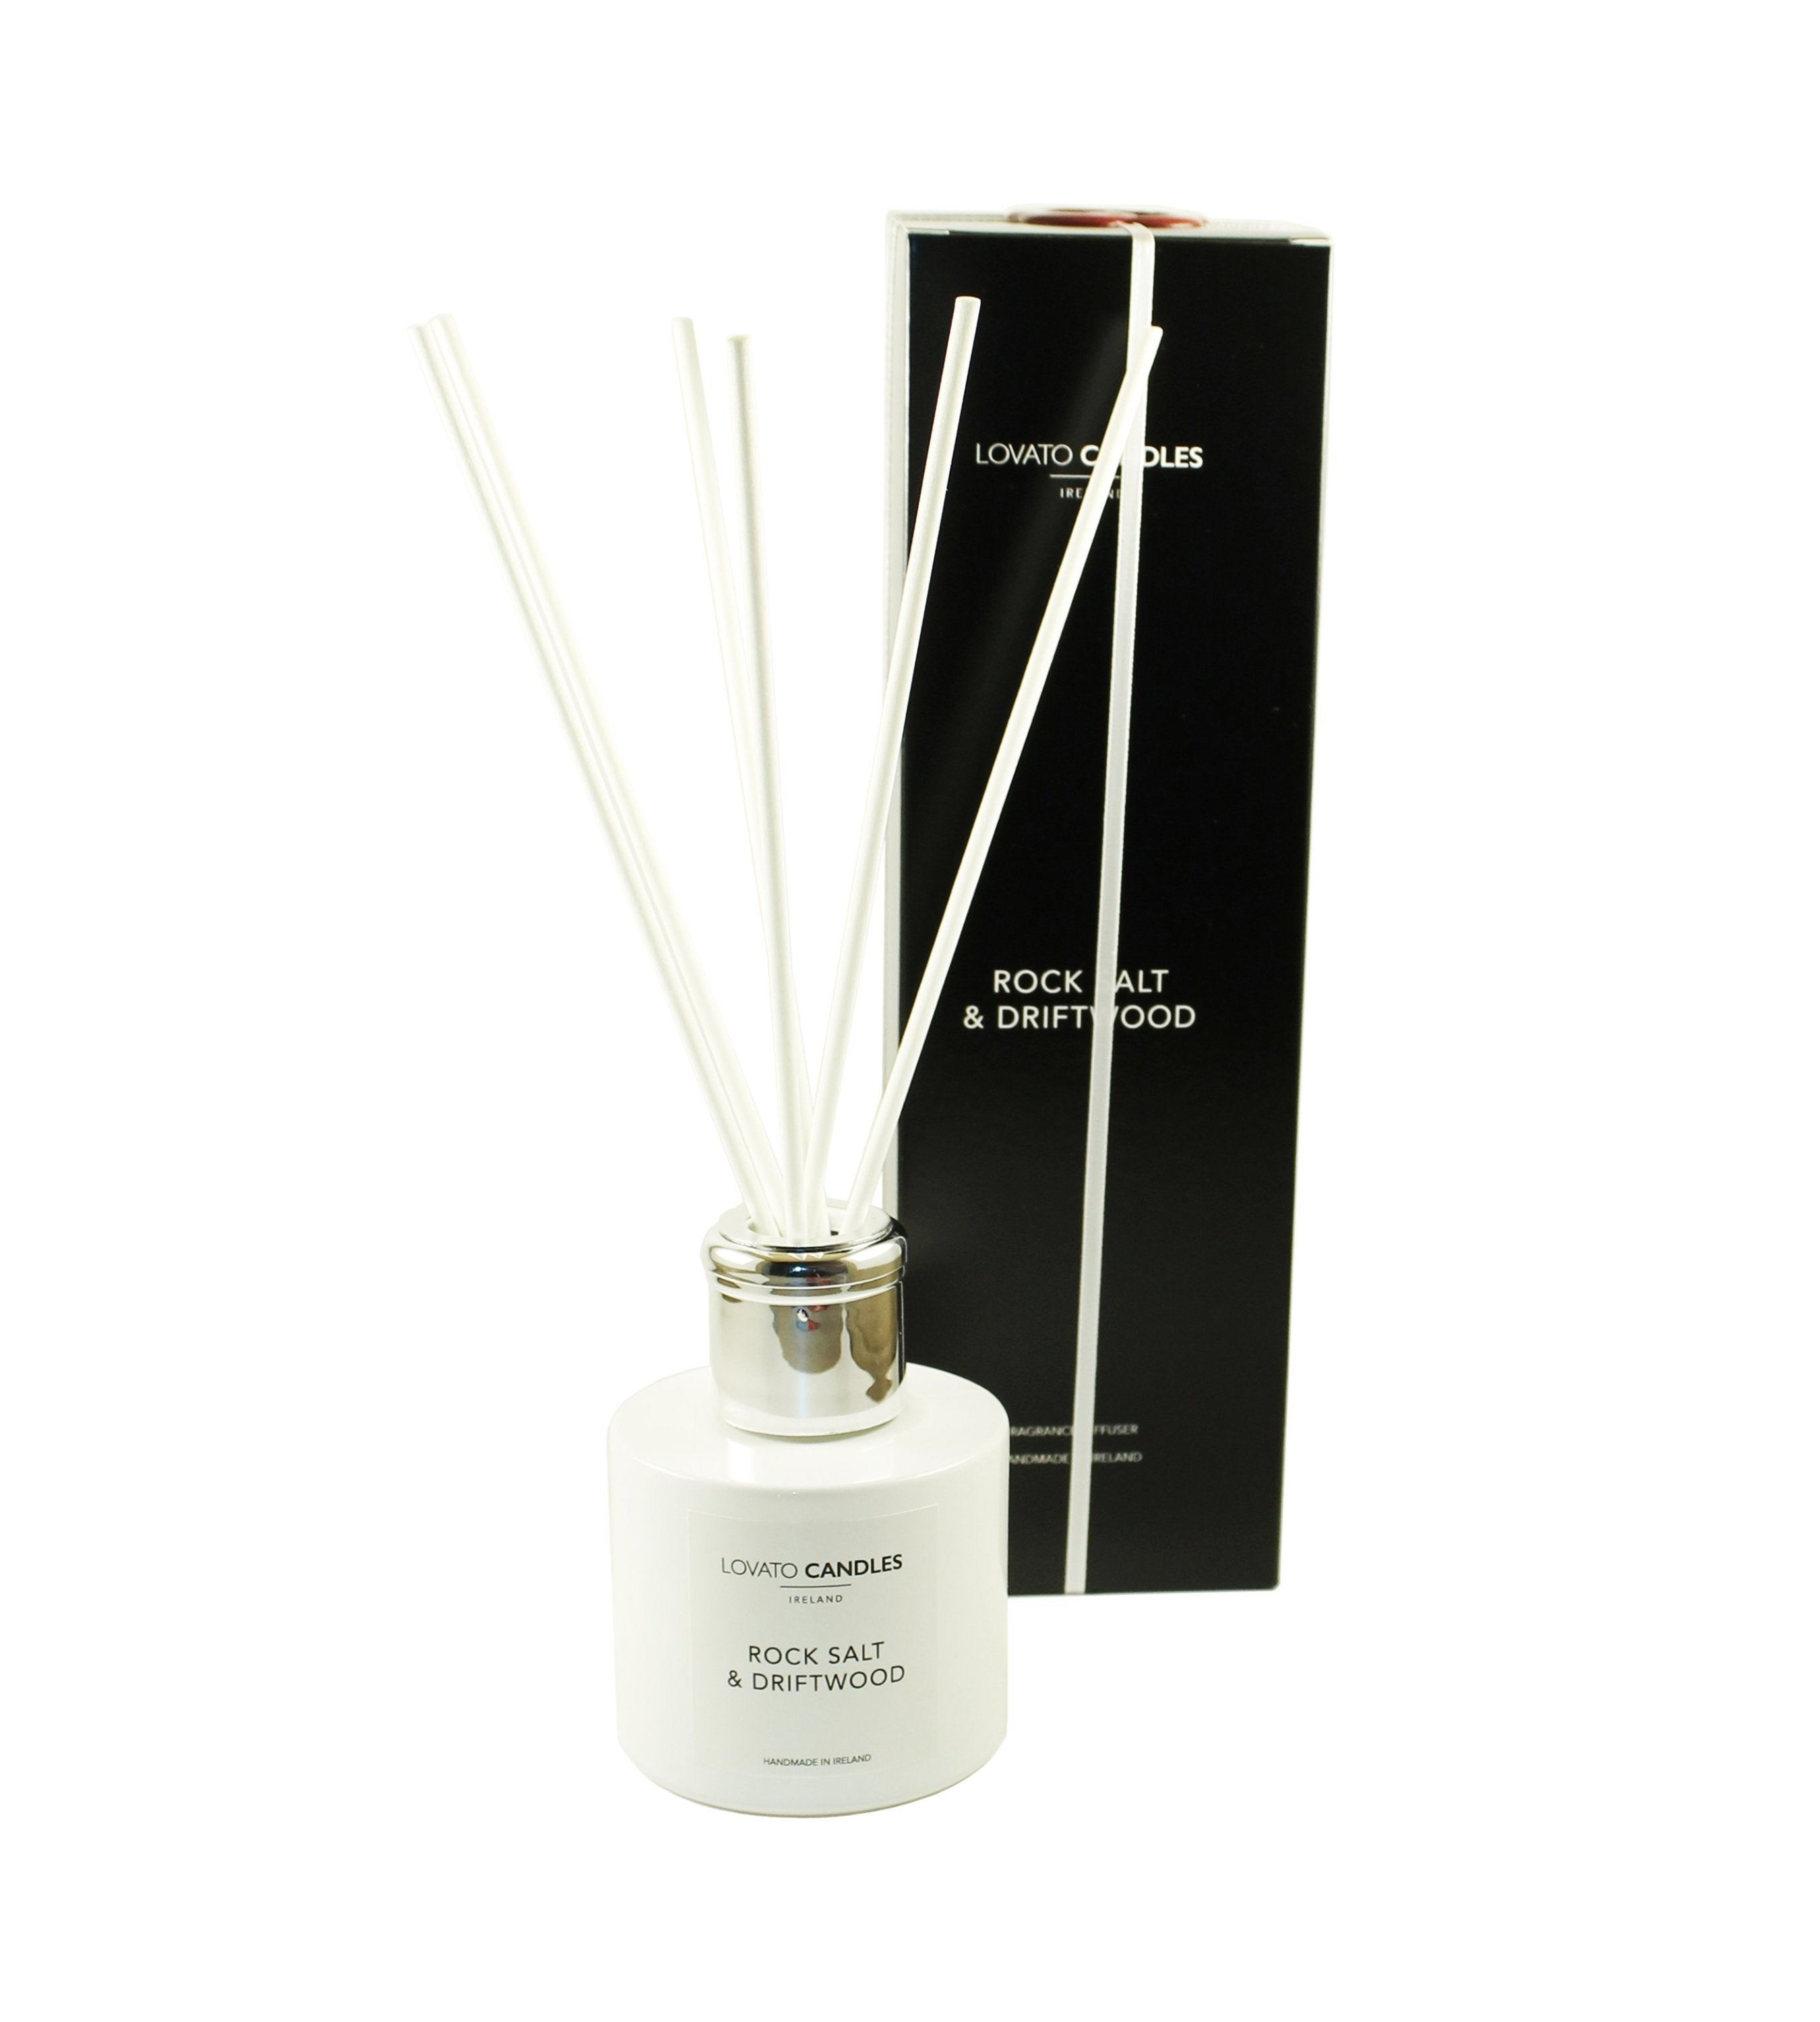 White Diffuser - Rock Salt & Driftwood - Lovato Candles